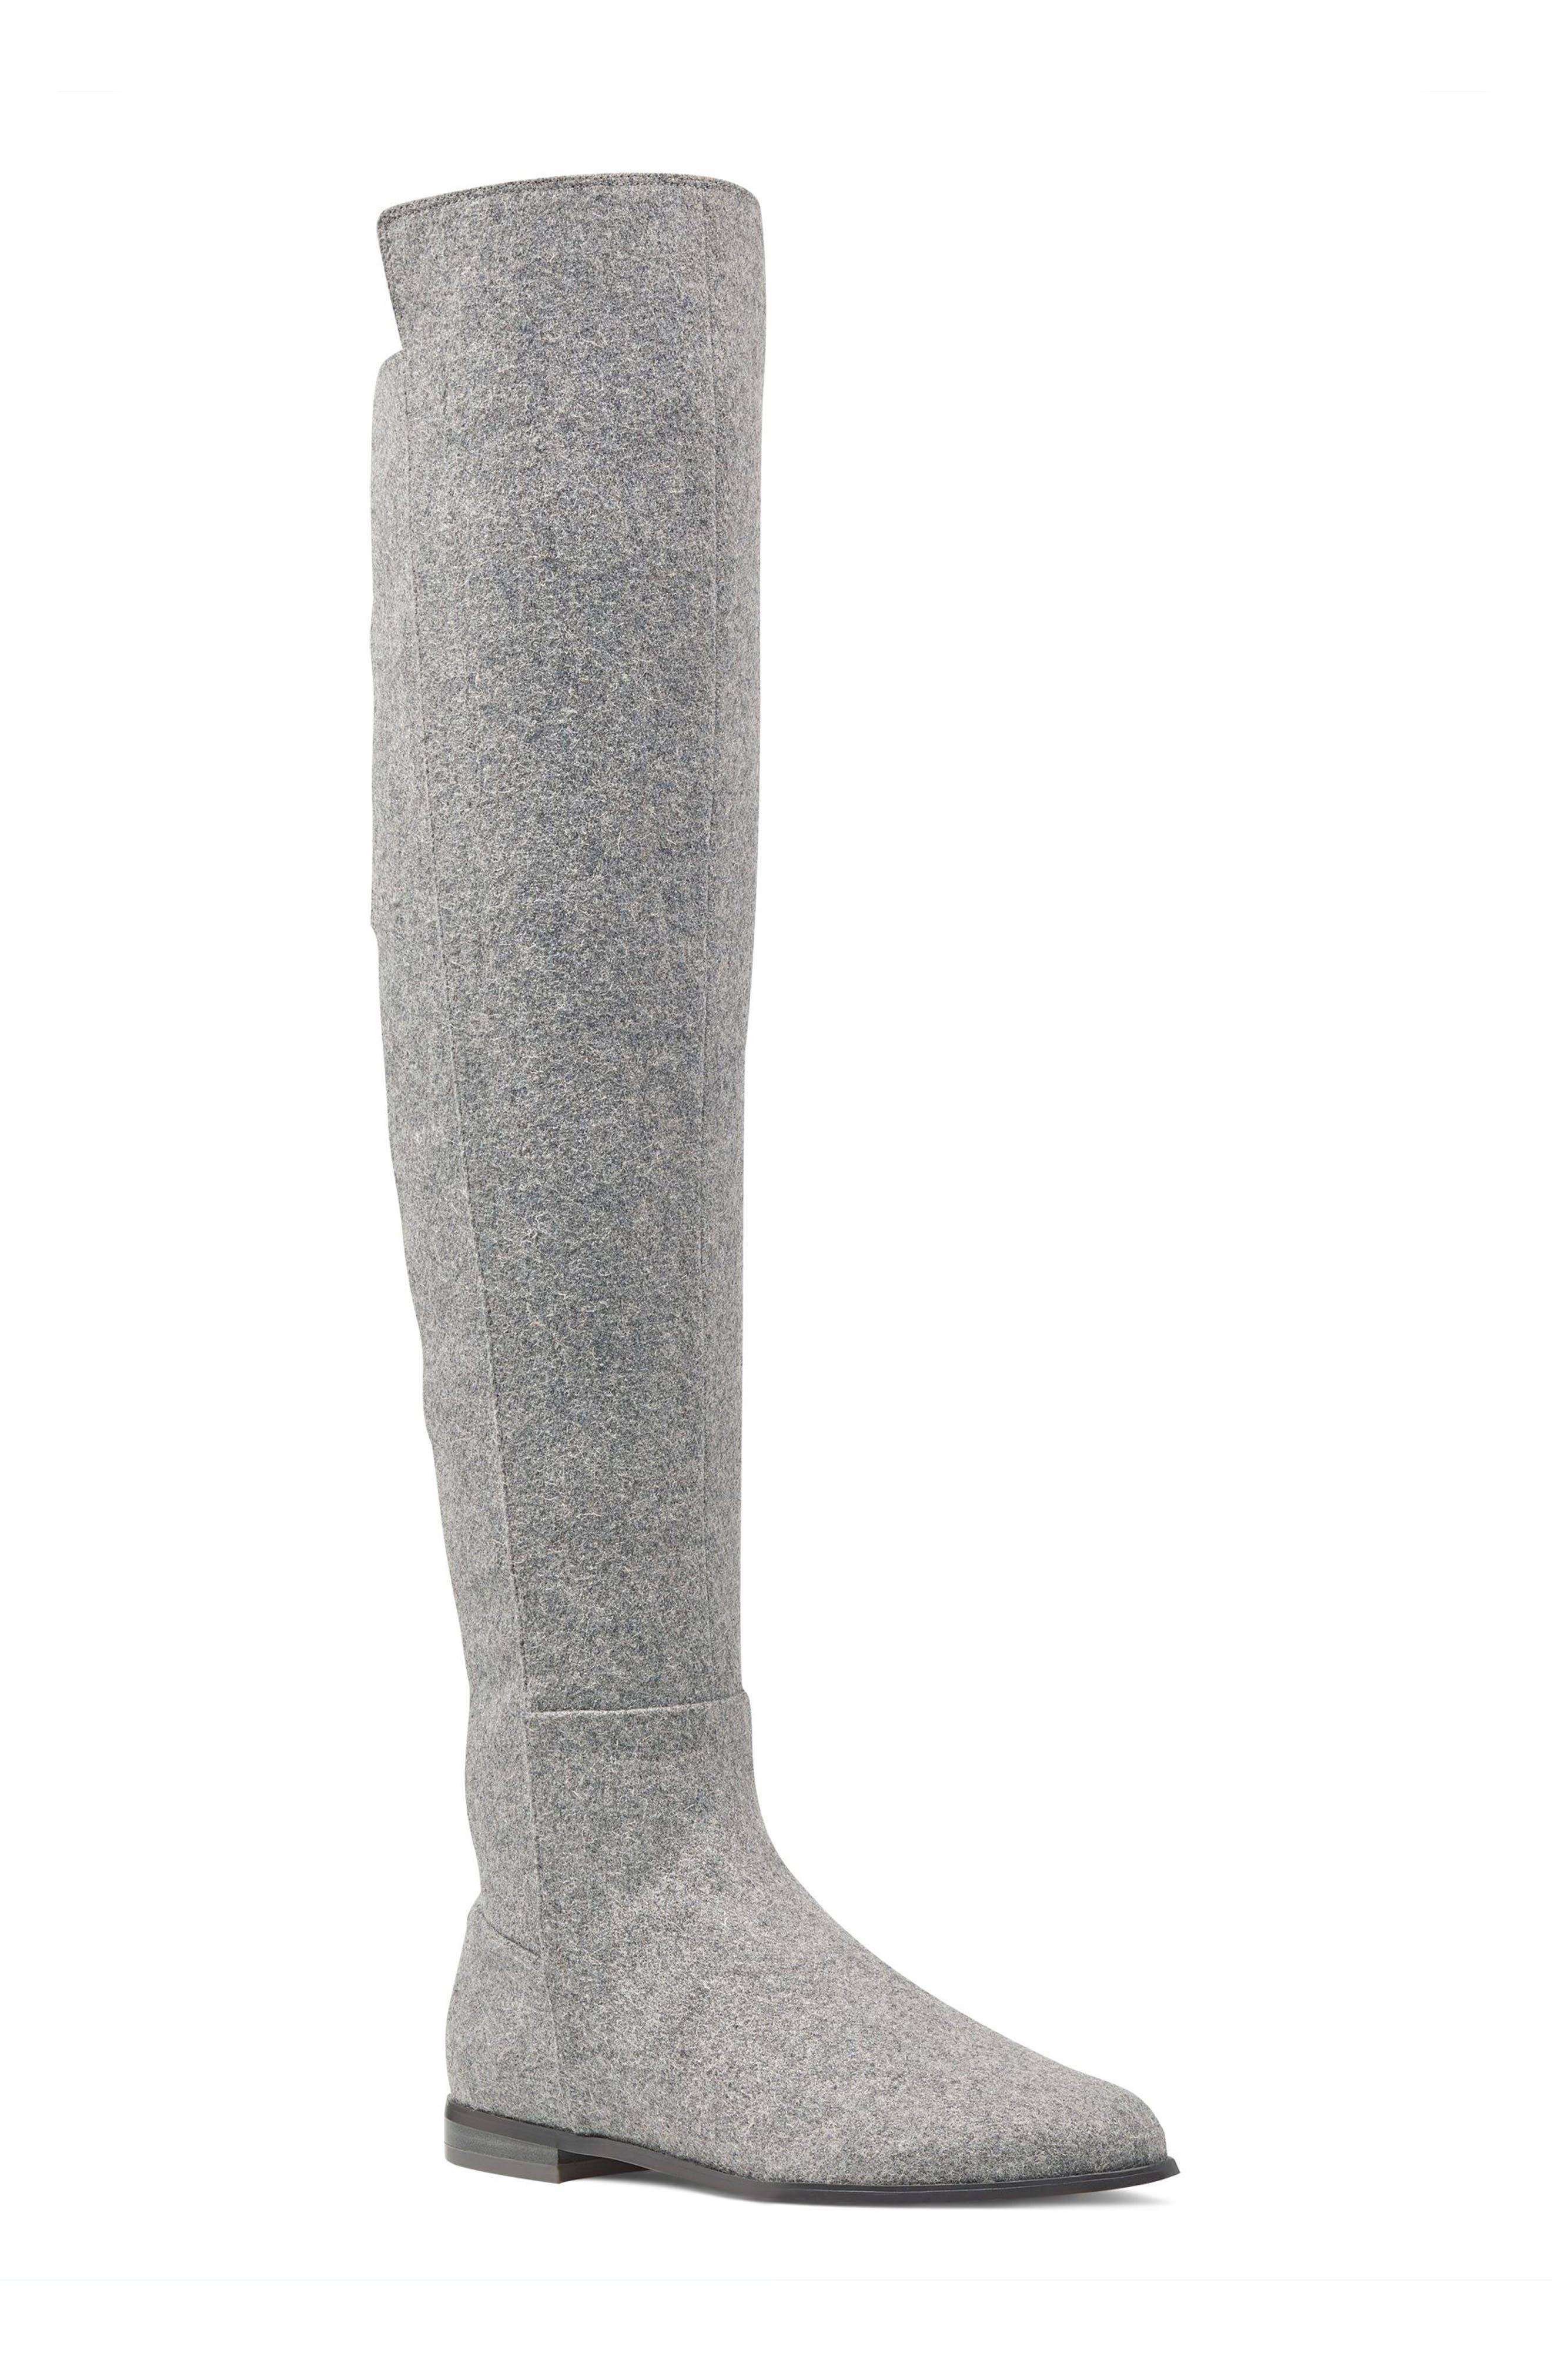 Alternate Image 1 Selected - Nine West Eltynn Over the Knee Boot (Women)